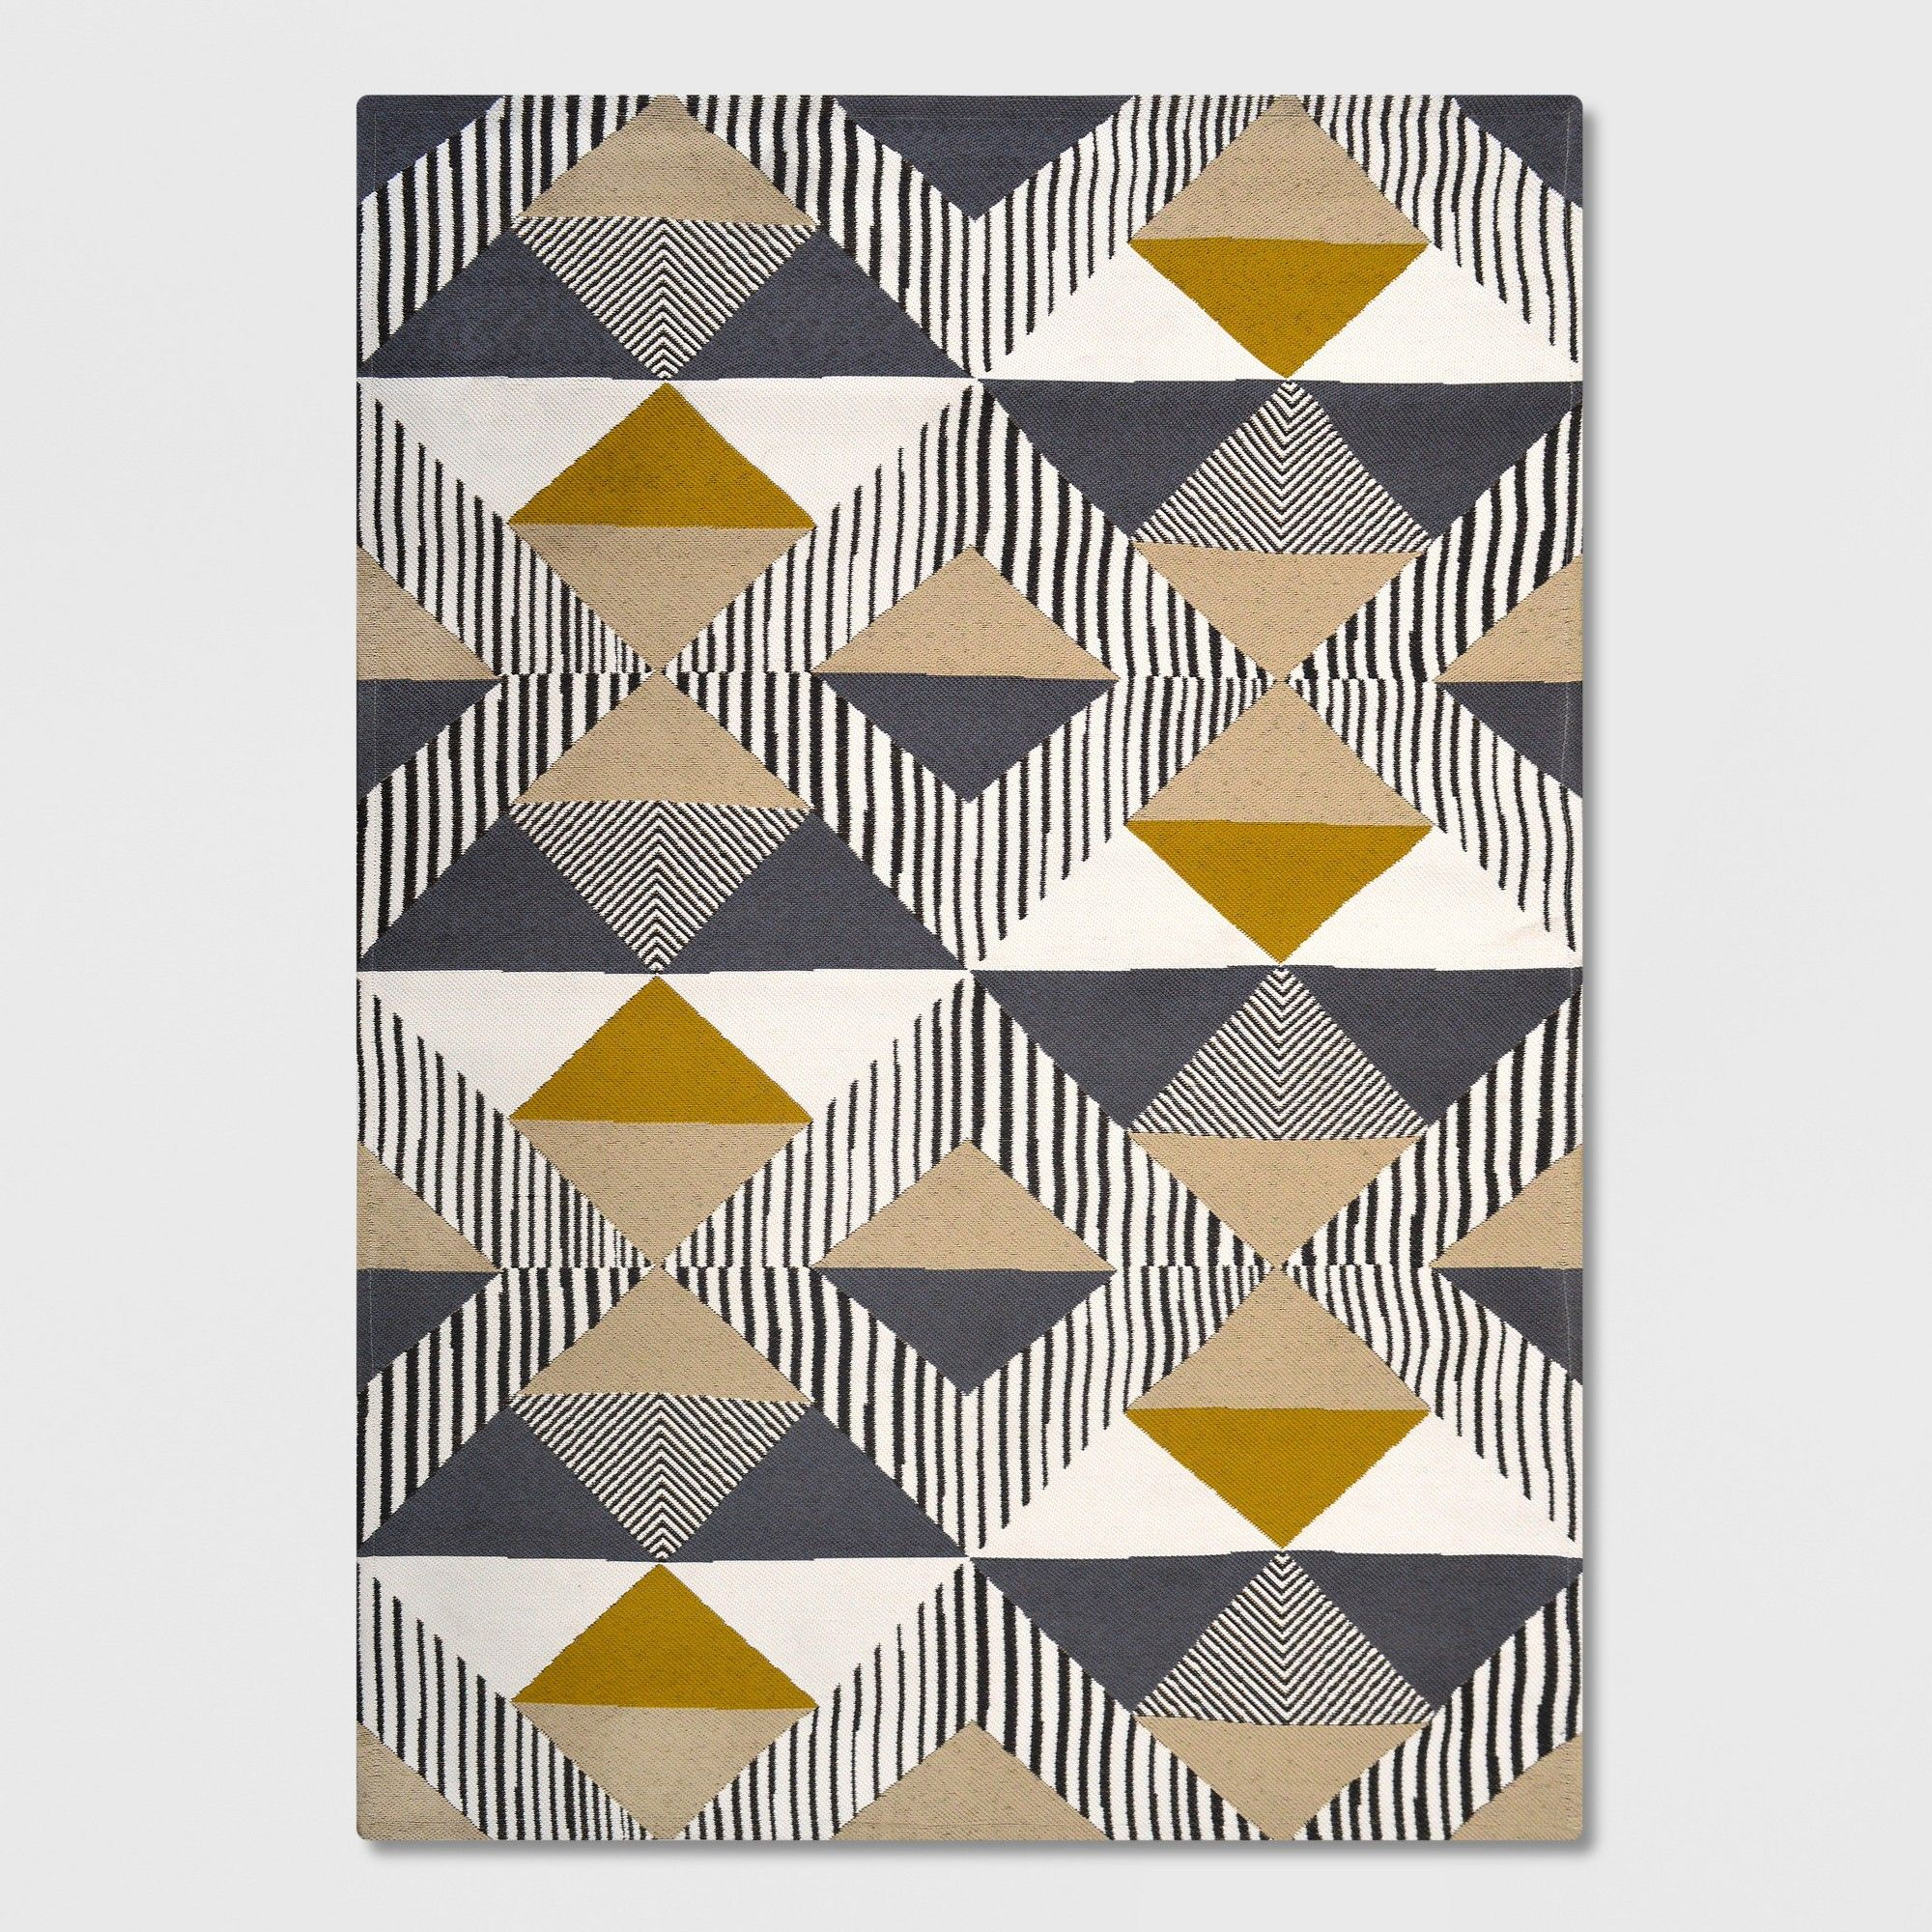 5 X 7 Austin Tile Outdoor Rug Gray Yellow Project 62 Modern Outdoor Rugs Outdoor Rugs Patio Grey Rugs Outdoor rugs 5 x 7